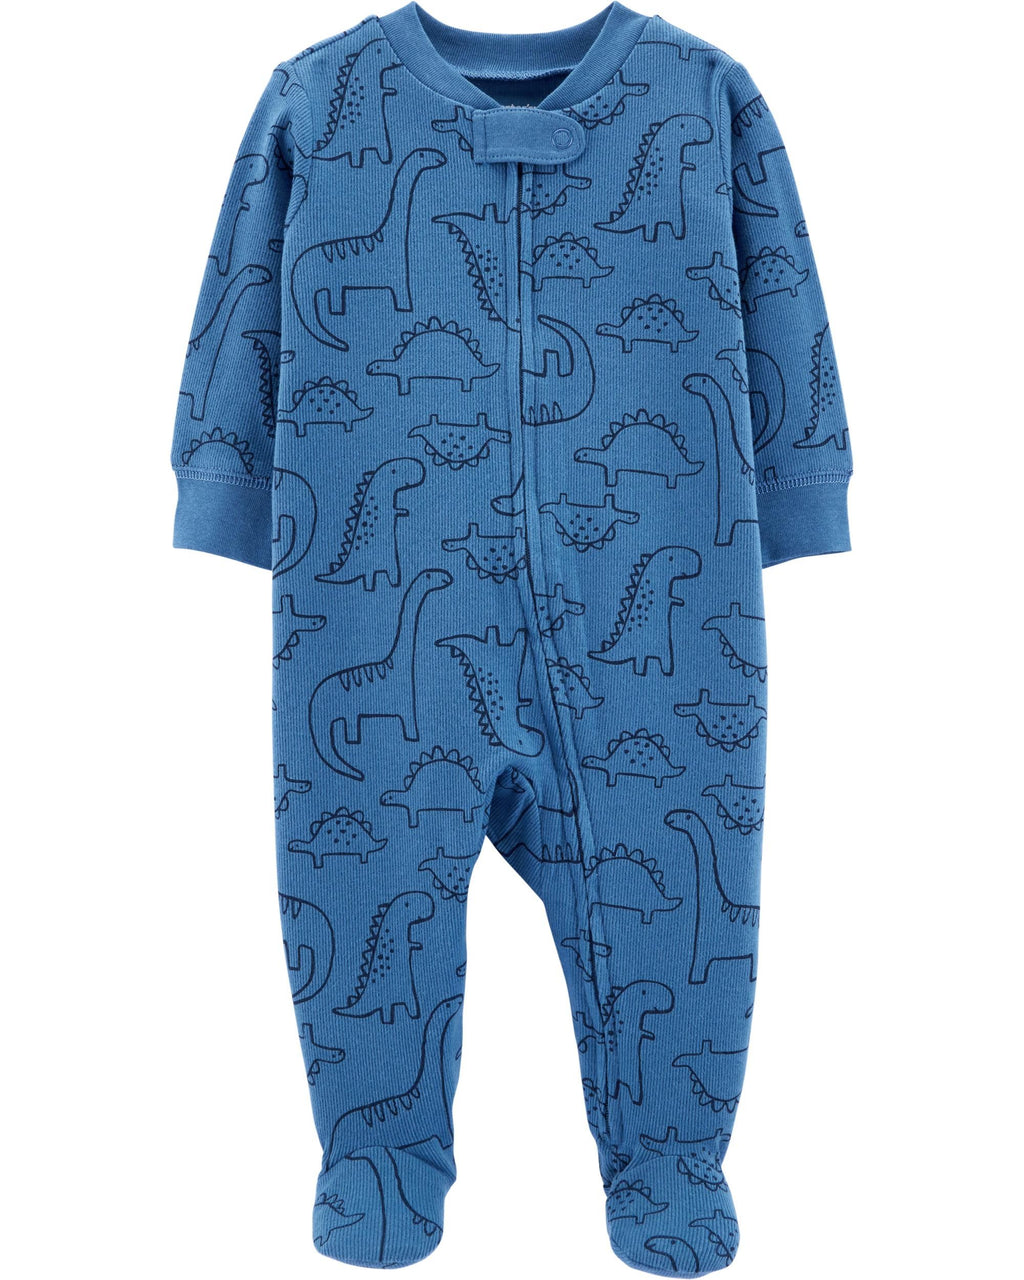 Enterito CARTERS Dinosaur Zip-Up Cotton Sleep & Play